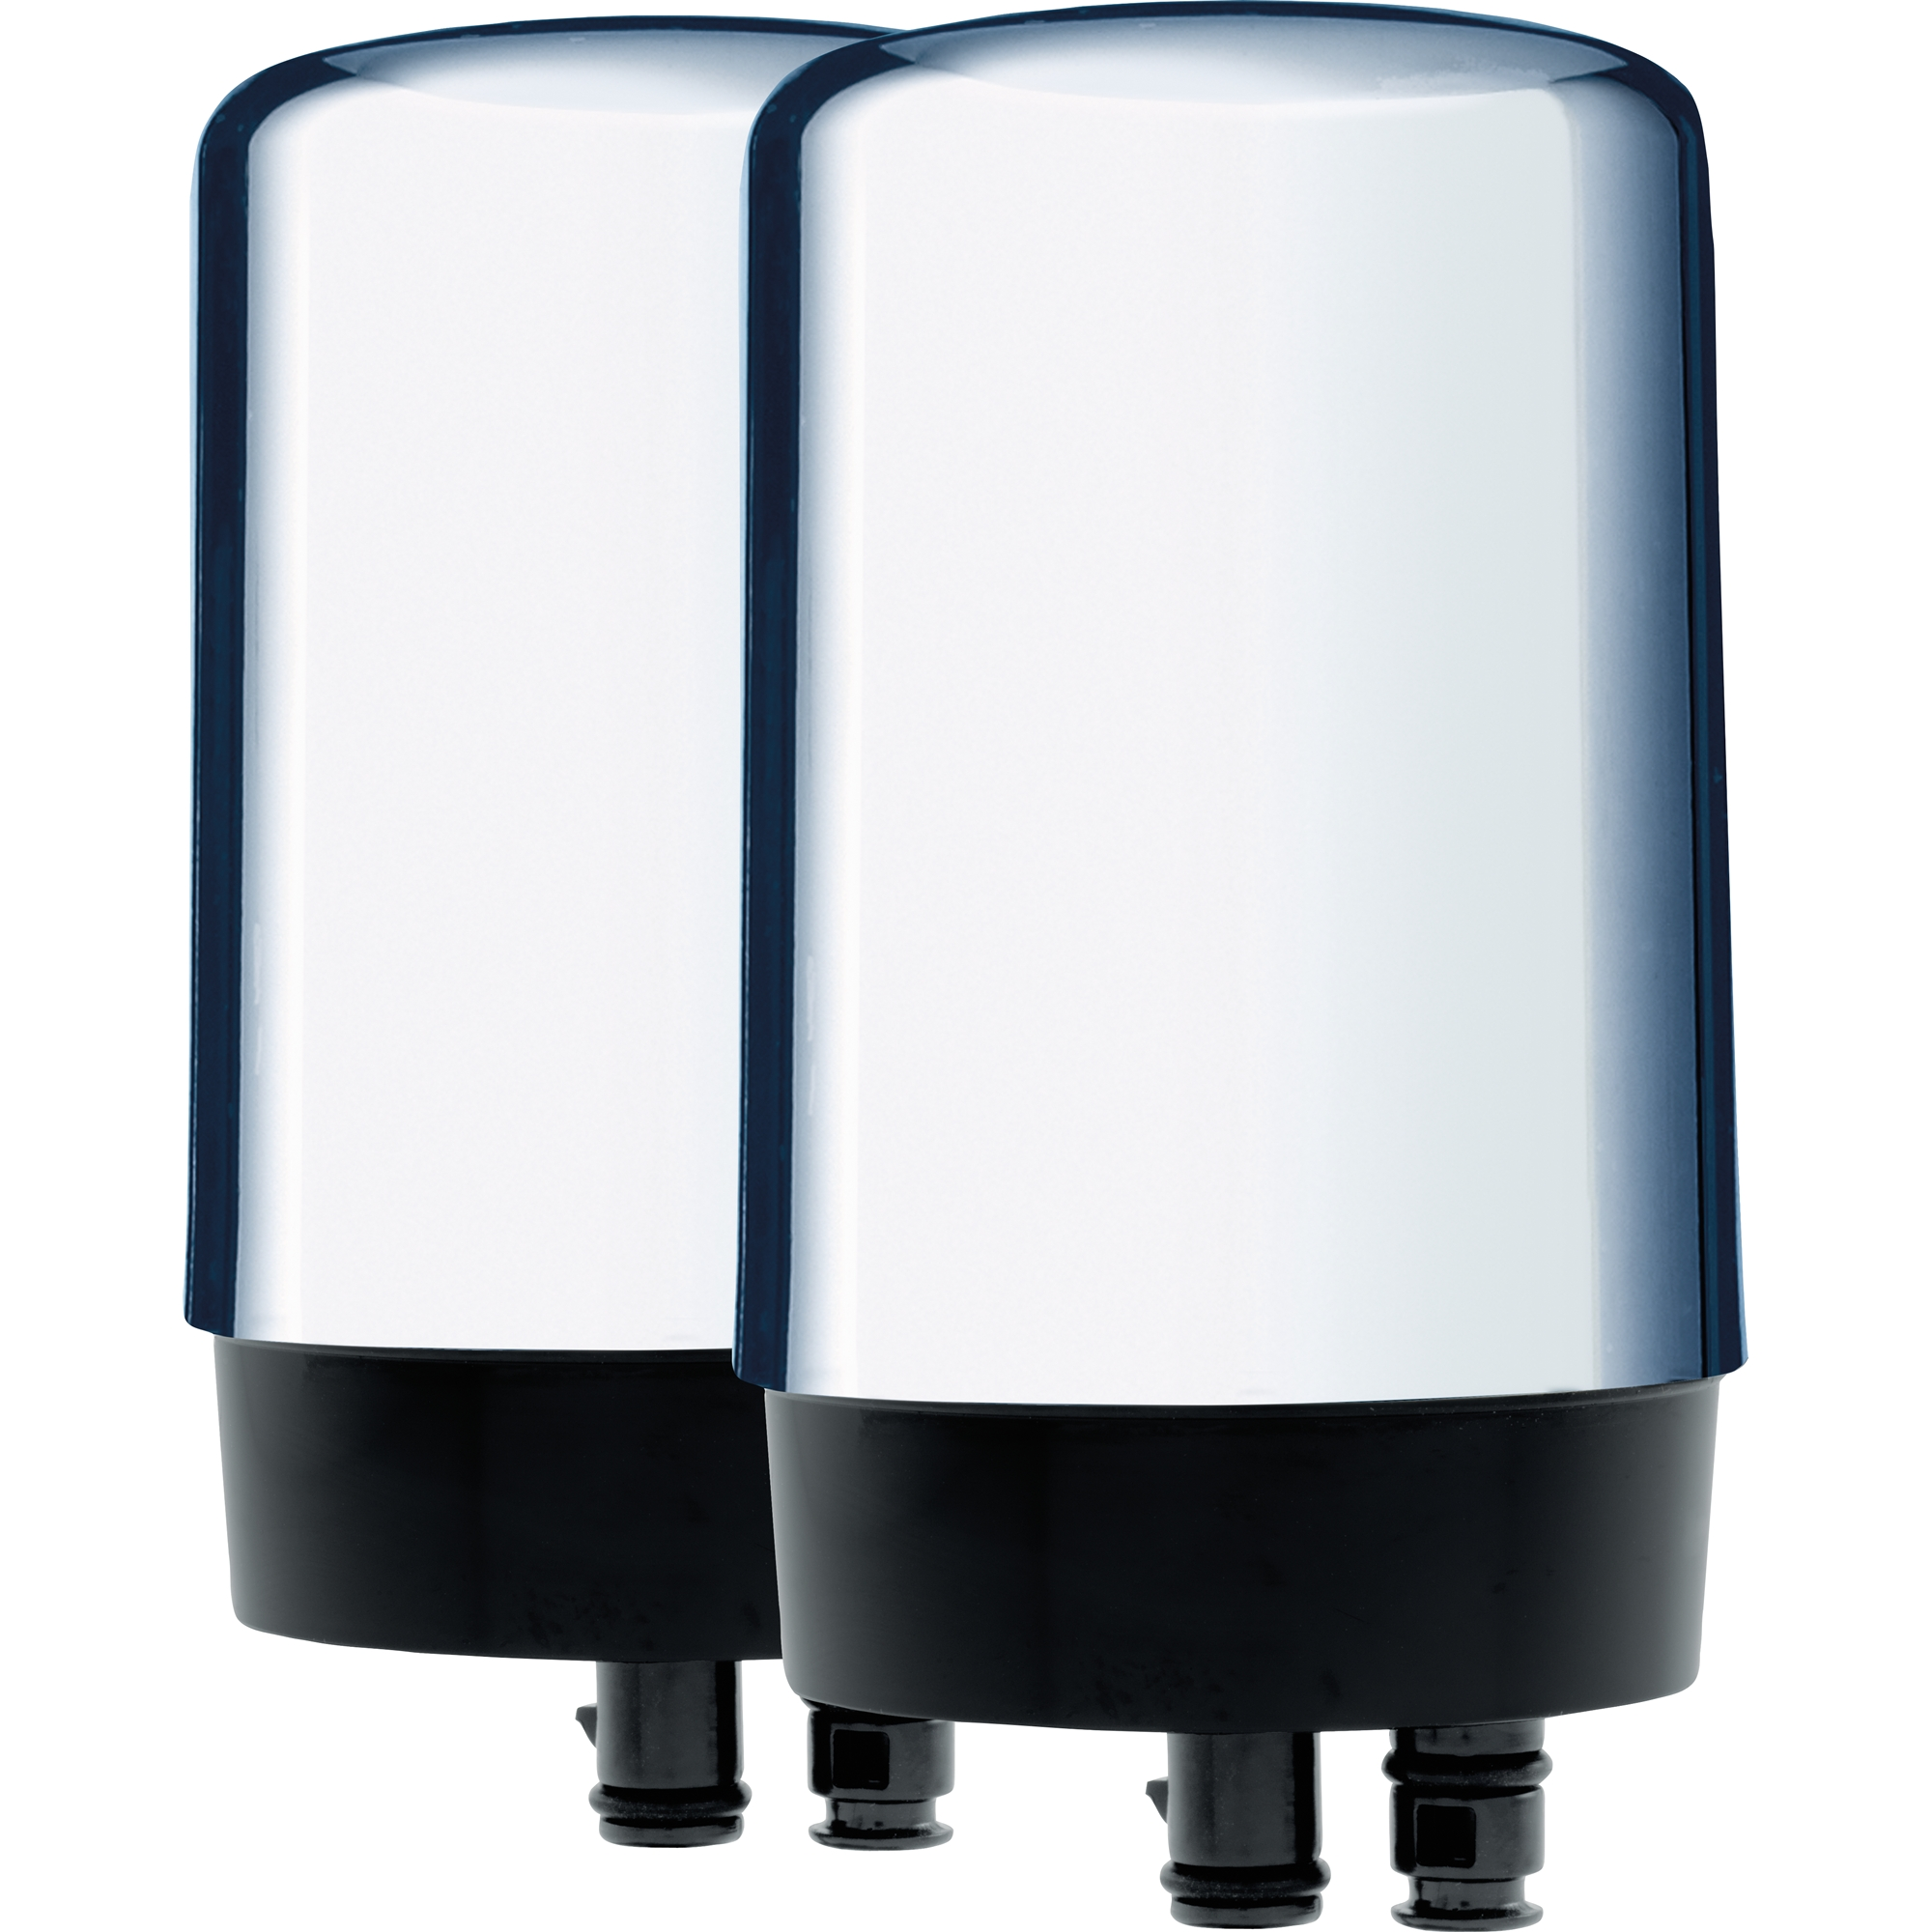 Brita Tap Water Filtration System Replacement Filters For Faucets - Chrome - 2 Count